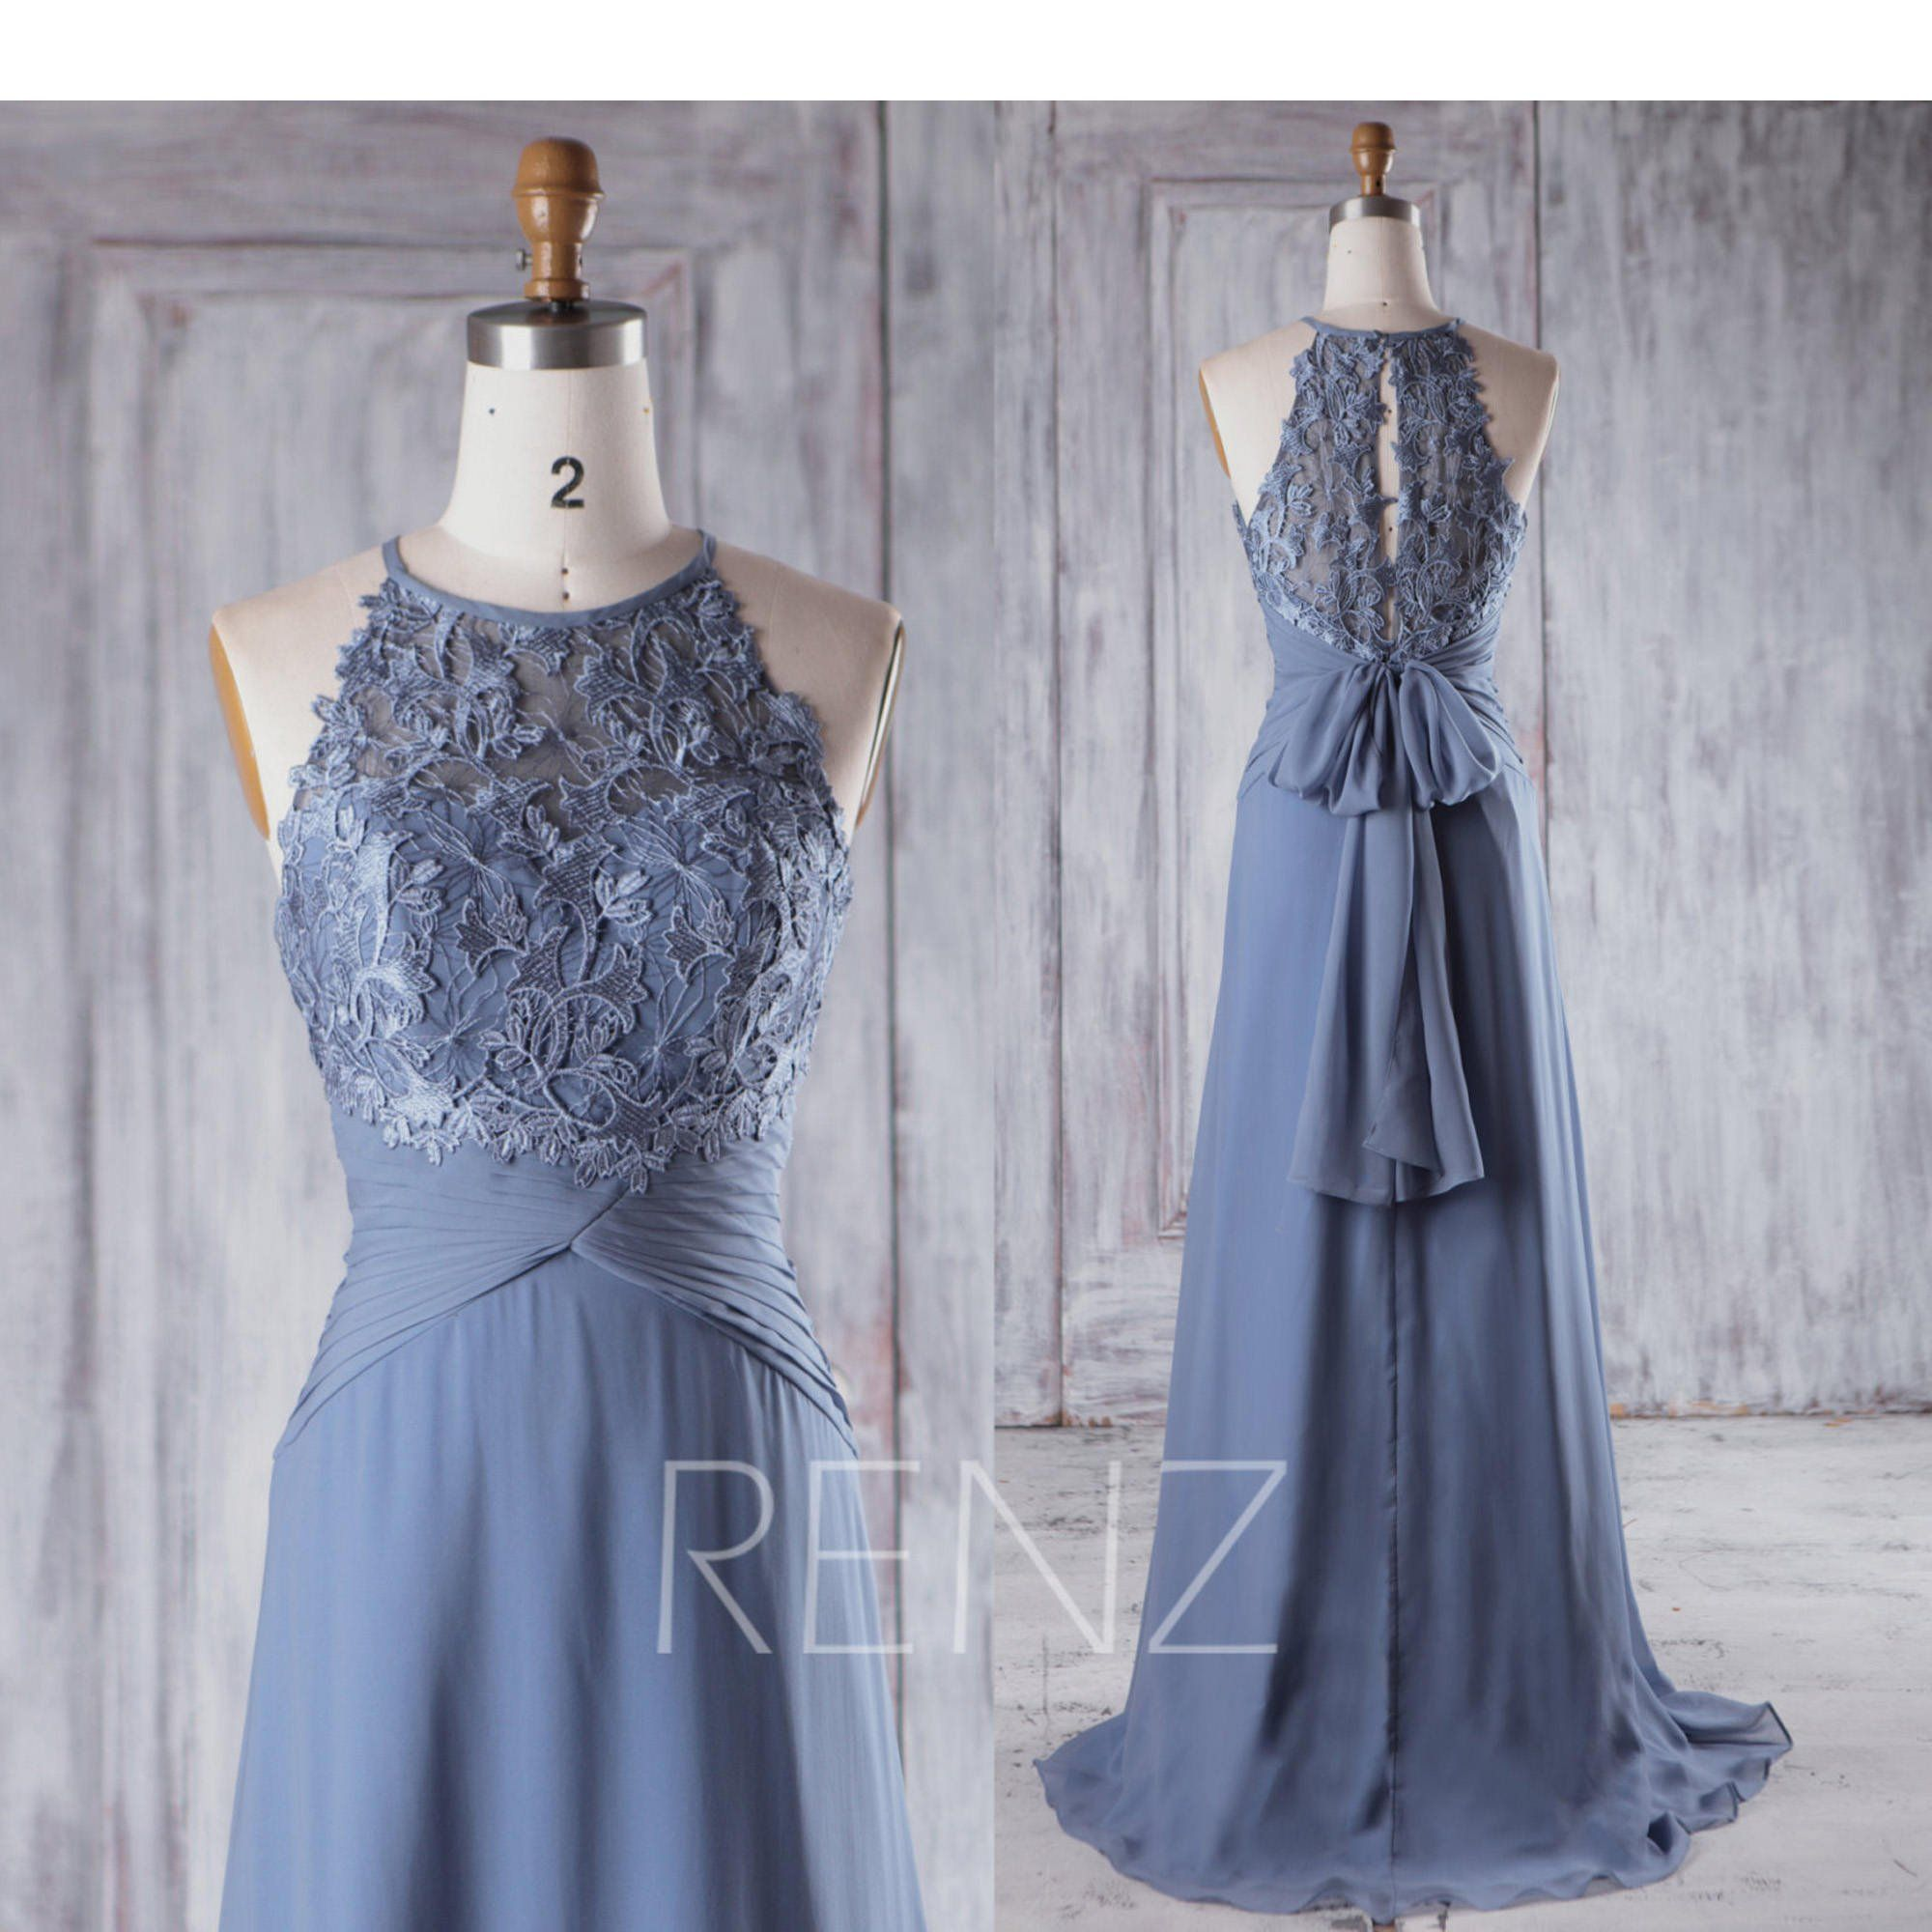 Bridesmaid dress steel blue chiffon maxi dresswedding dresskey